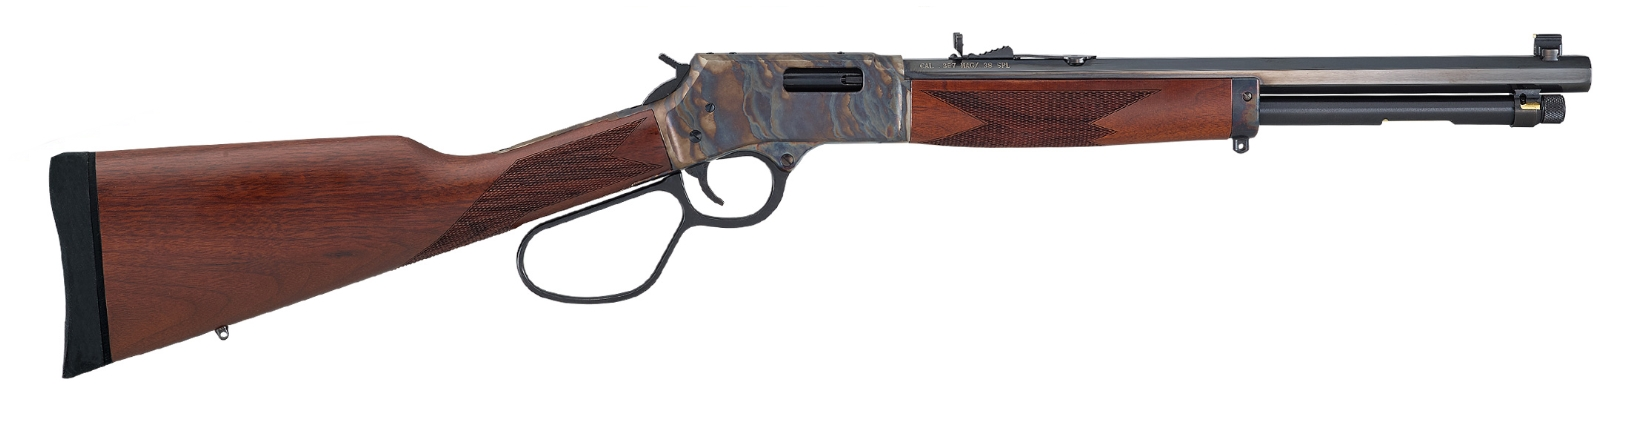 Henry Repeating Arms BIG BOY STEEL CCH 44 MAGNUM   44 SPECIAL